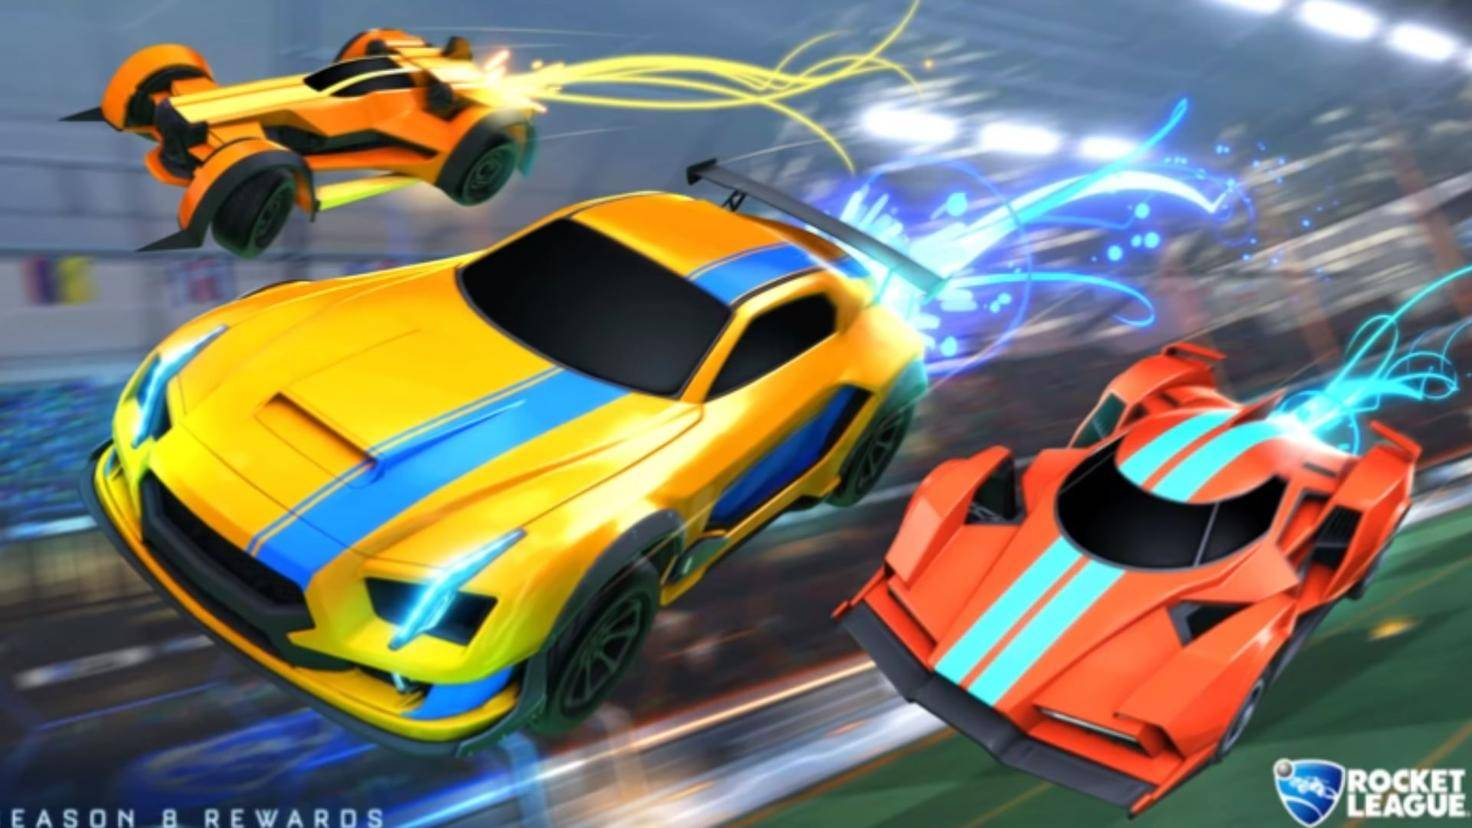 Rocket League rocket boost 2